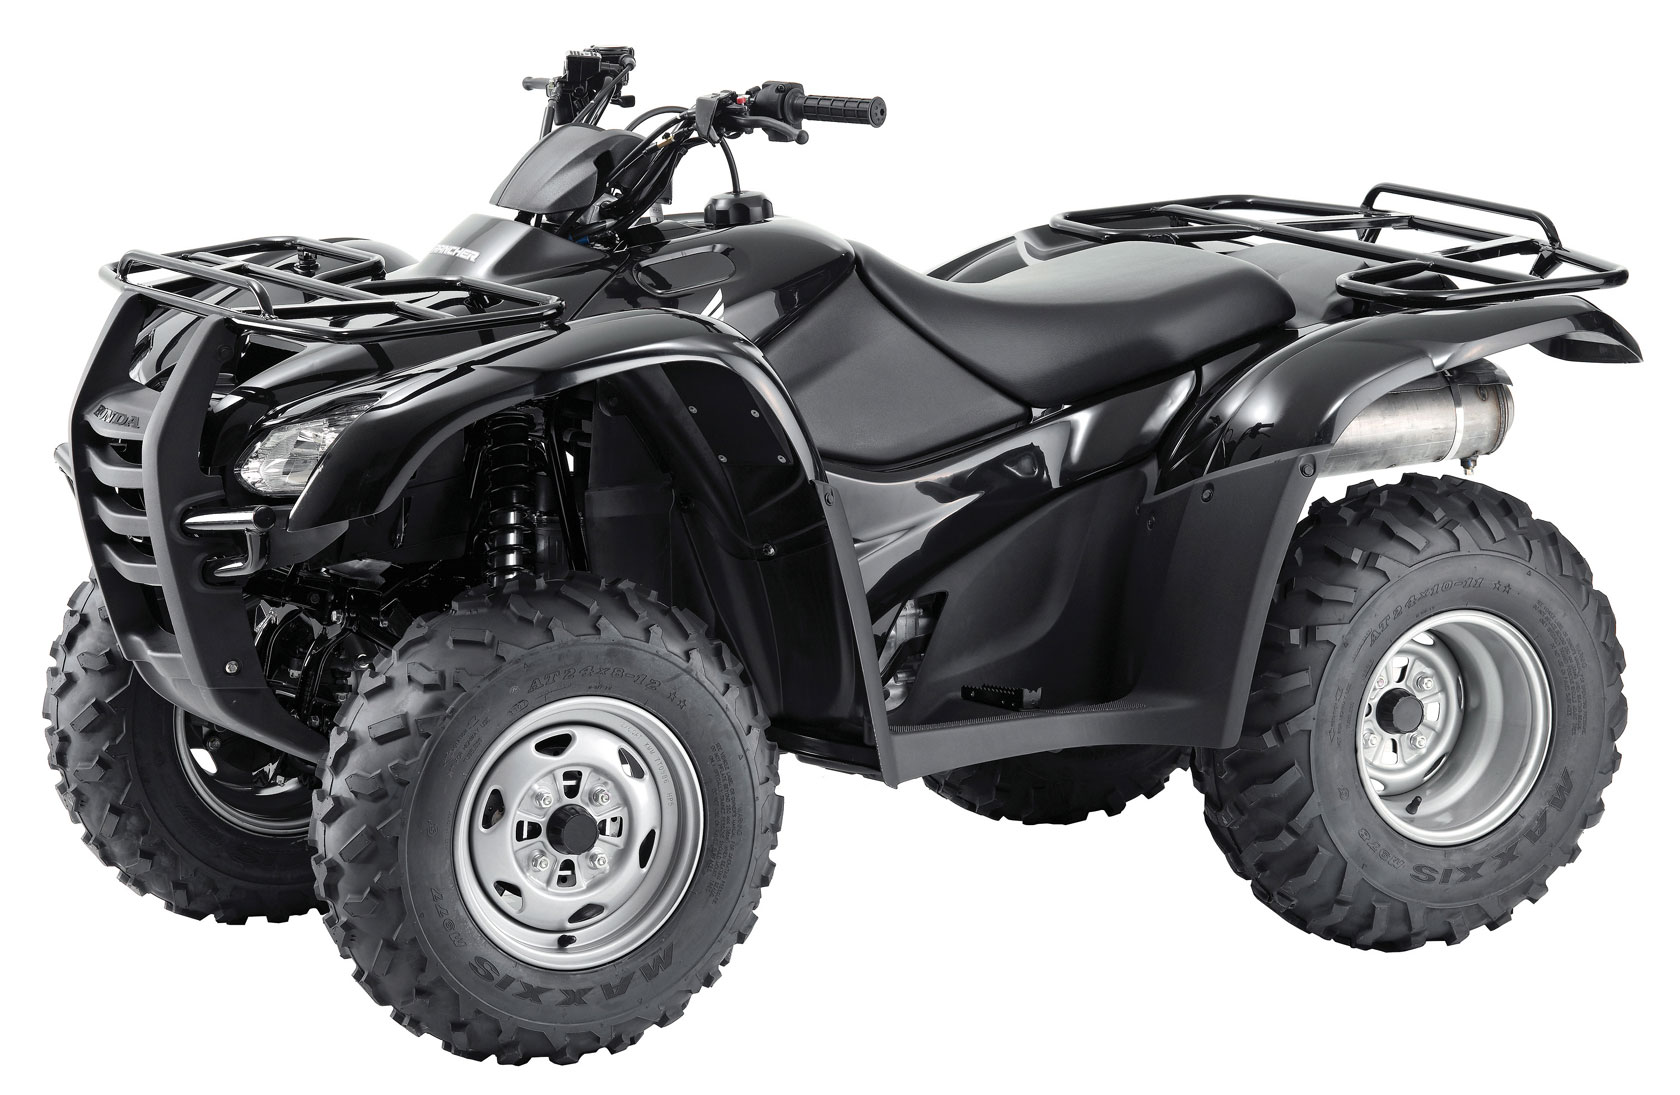 ... HONDA FourTrax Rancher TRX420TM (2008 - 2009)